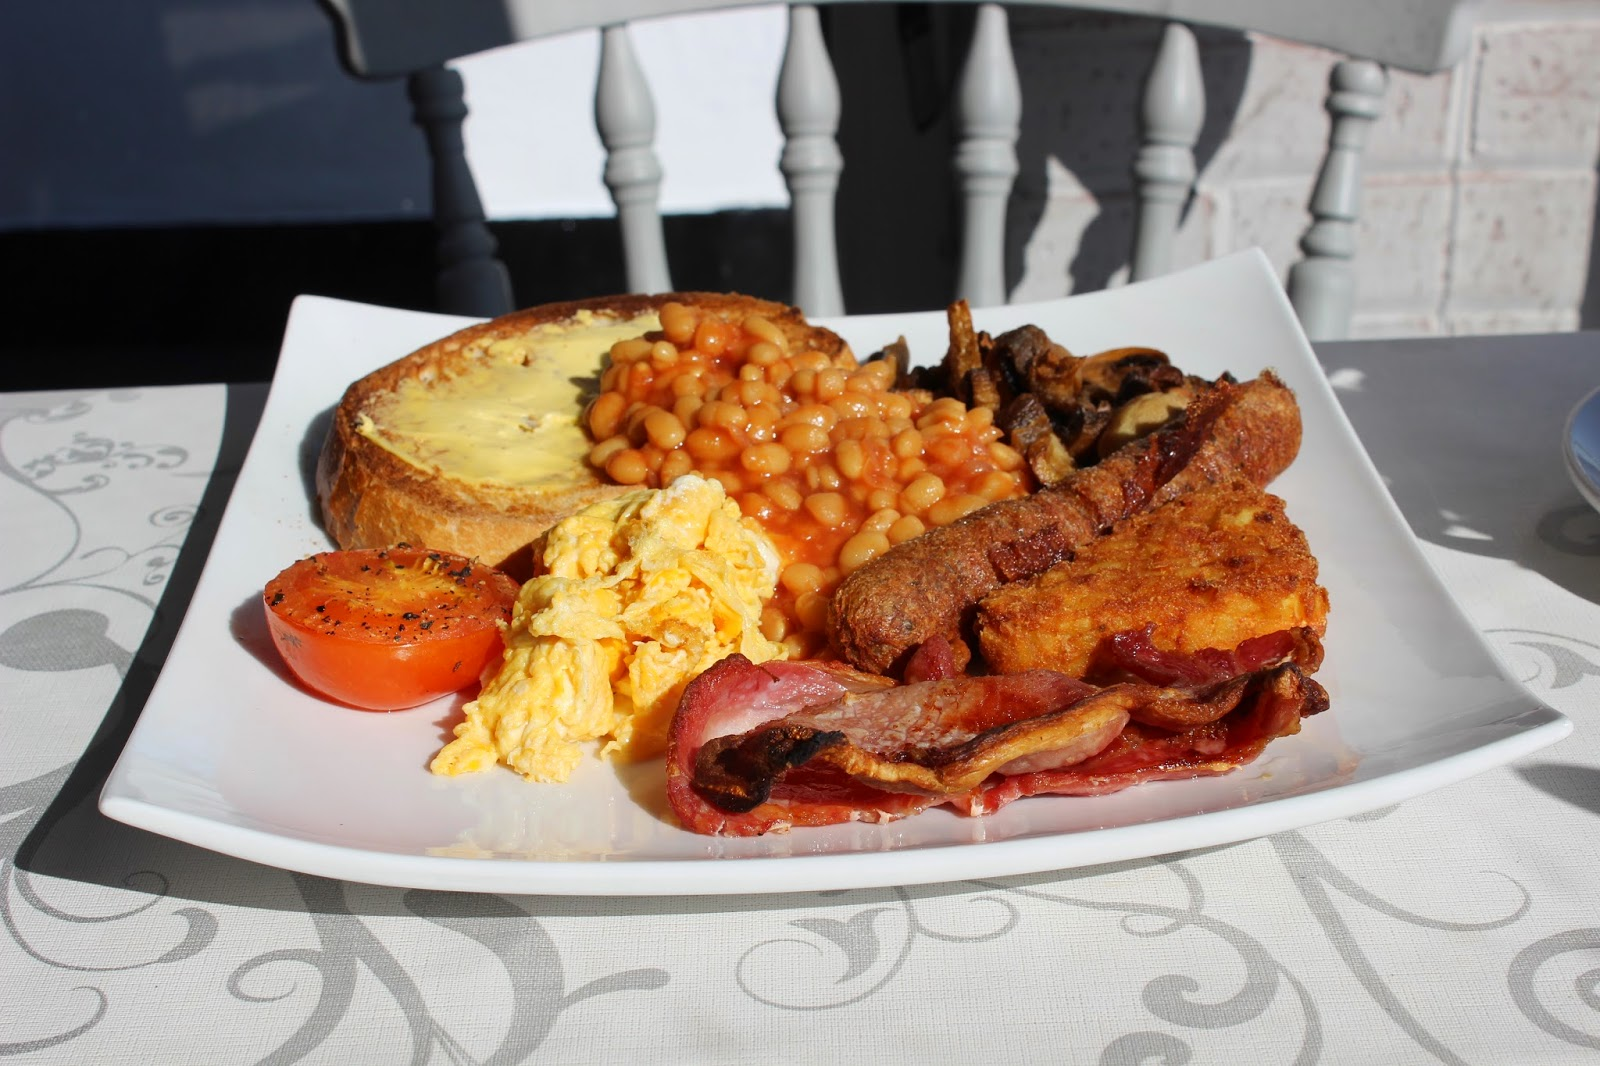 breakfast at Oliver's On The Mount cafe, Scarborough